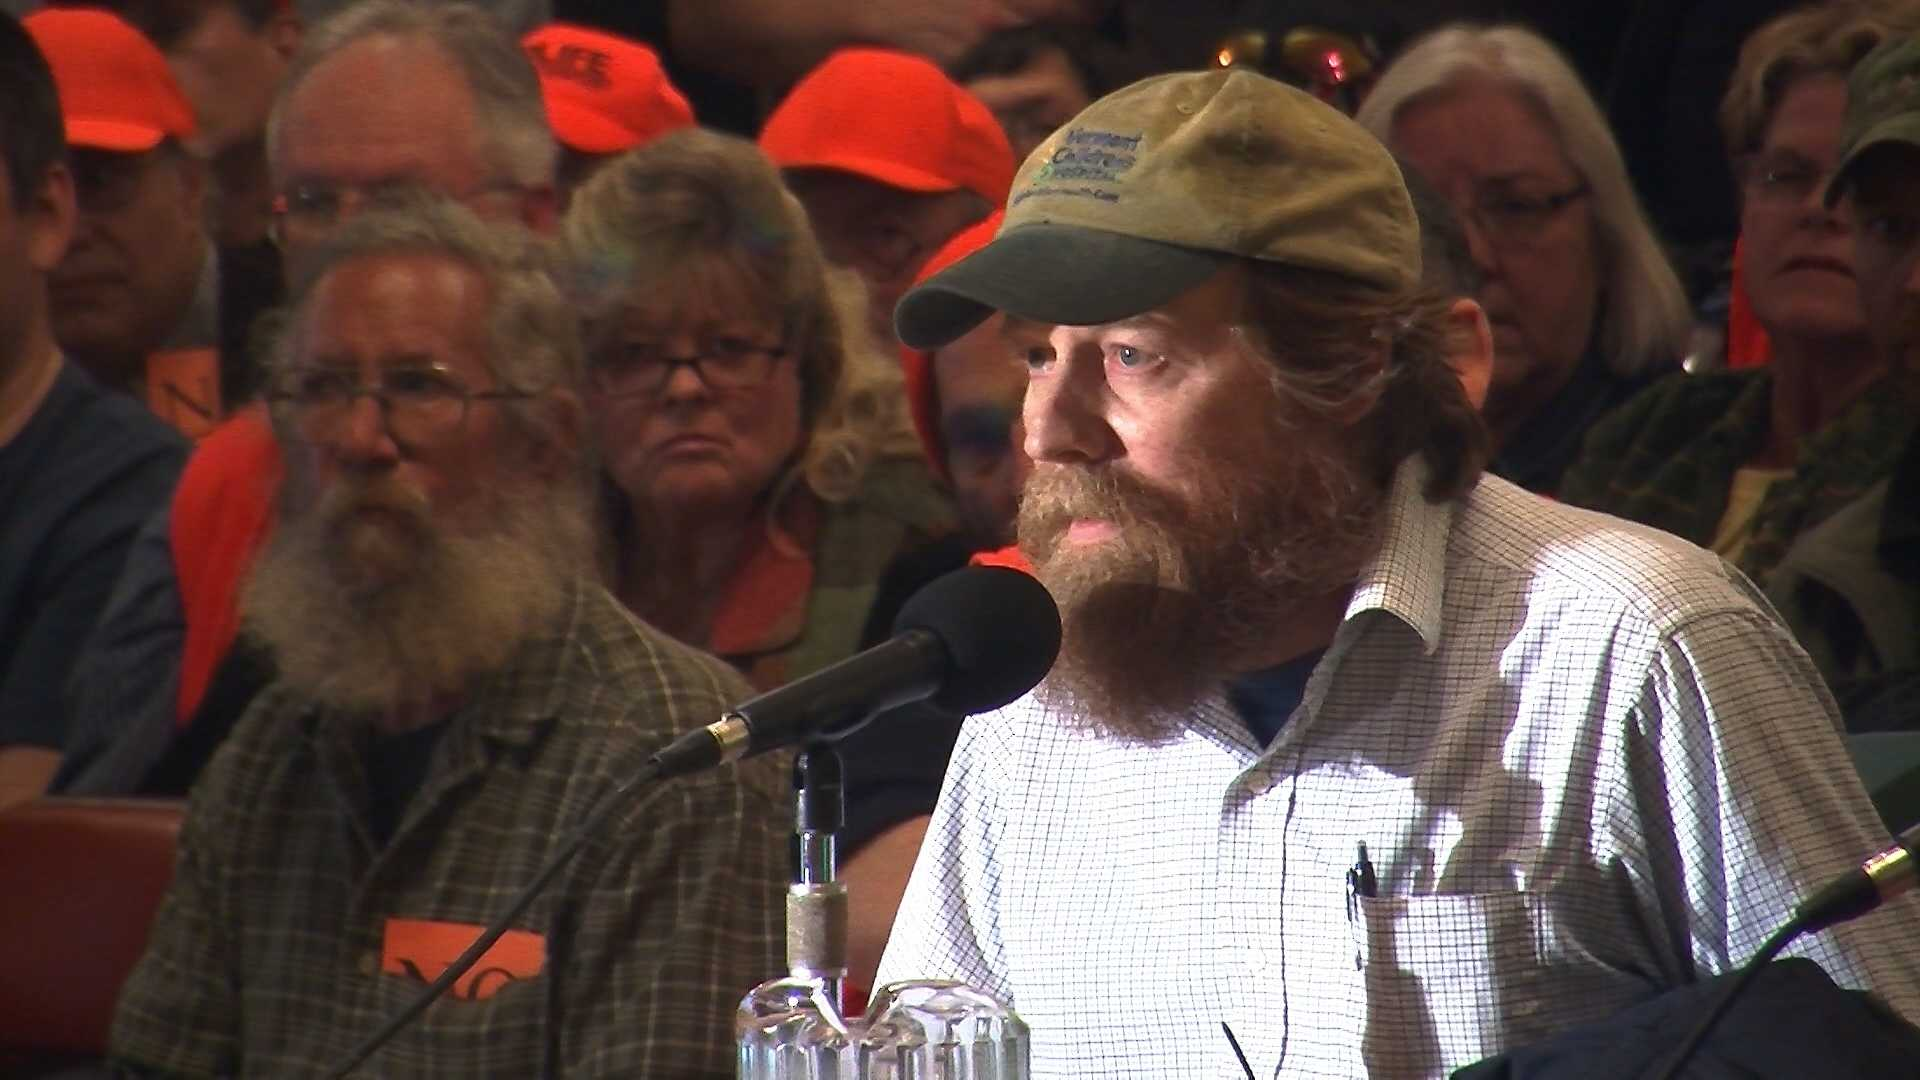 10-21 Council hears from gun owners, opponents - img